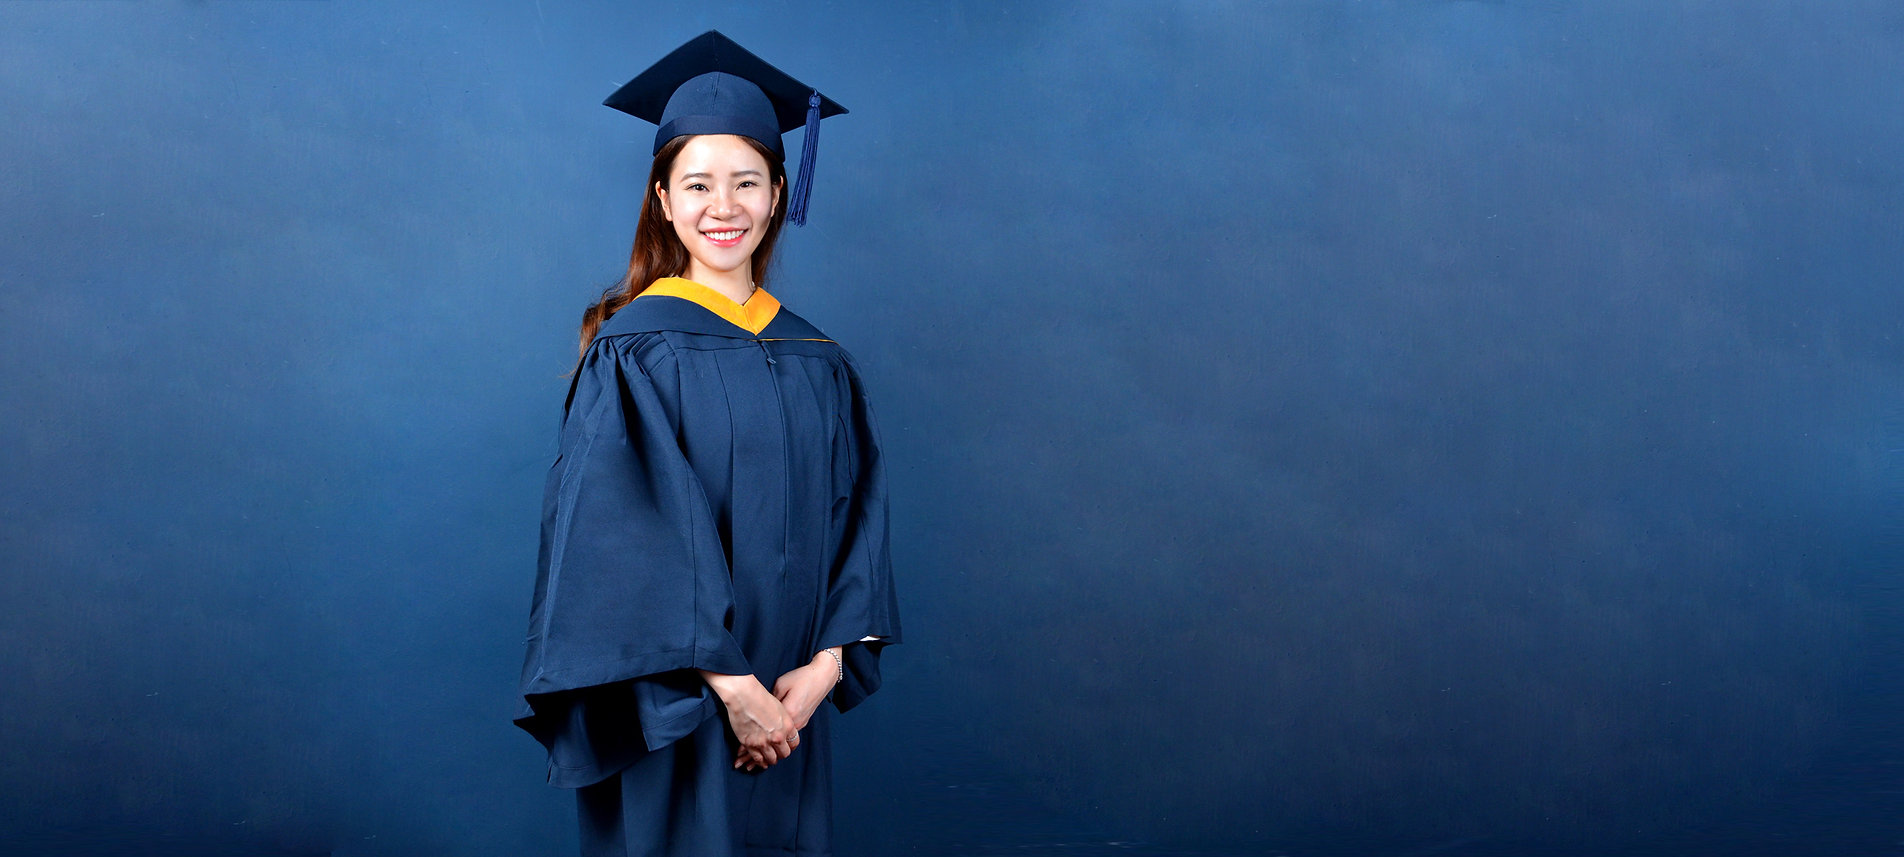 Hong Kong University of Science and Technology (HKUST) | Graduation Gown | HKUST Academic Dress | HKUST graduation gown | HKUST academic dress | UST graduation gown | UST Academic Dress | Rent | Buy | 租 | 買 | 科技大學畢業袍 | 科大學士畢業袍 | 科大碩士畢業袍 | 科大博士畢業袍 | 科大畢業袍 | UST畢業袍 | UST學士袍 | HKUST畢業袍 | HKUST學士袍 #科技大學畢業袍 #科大畢業袍 #UST畢業袍 #HKUST畢業袍 #UST graduation gown #UST academic dress #HKUST graduation gown #HKUST academic dress